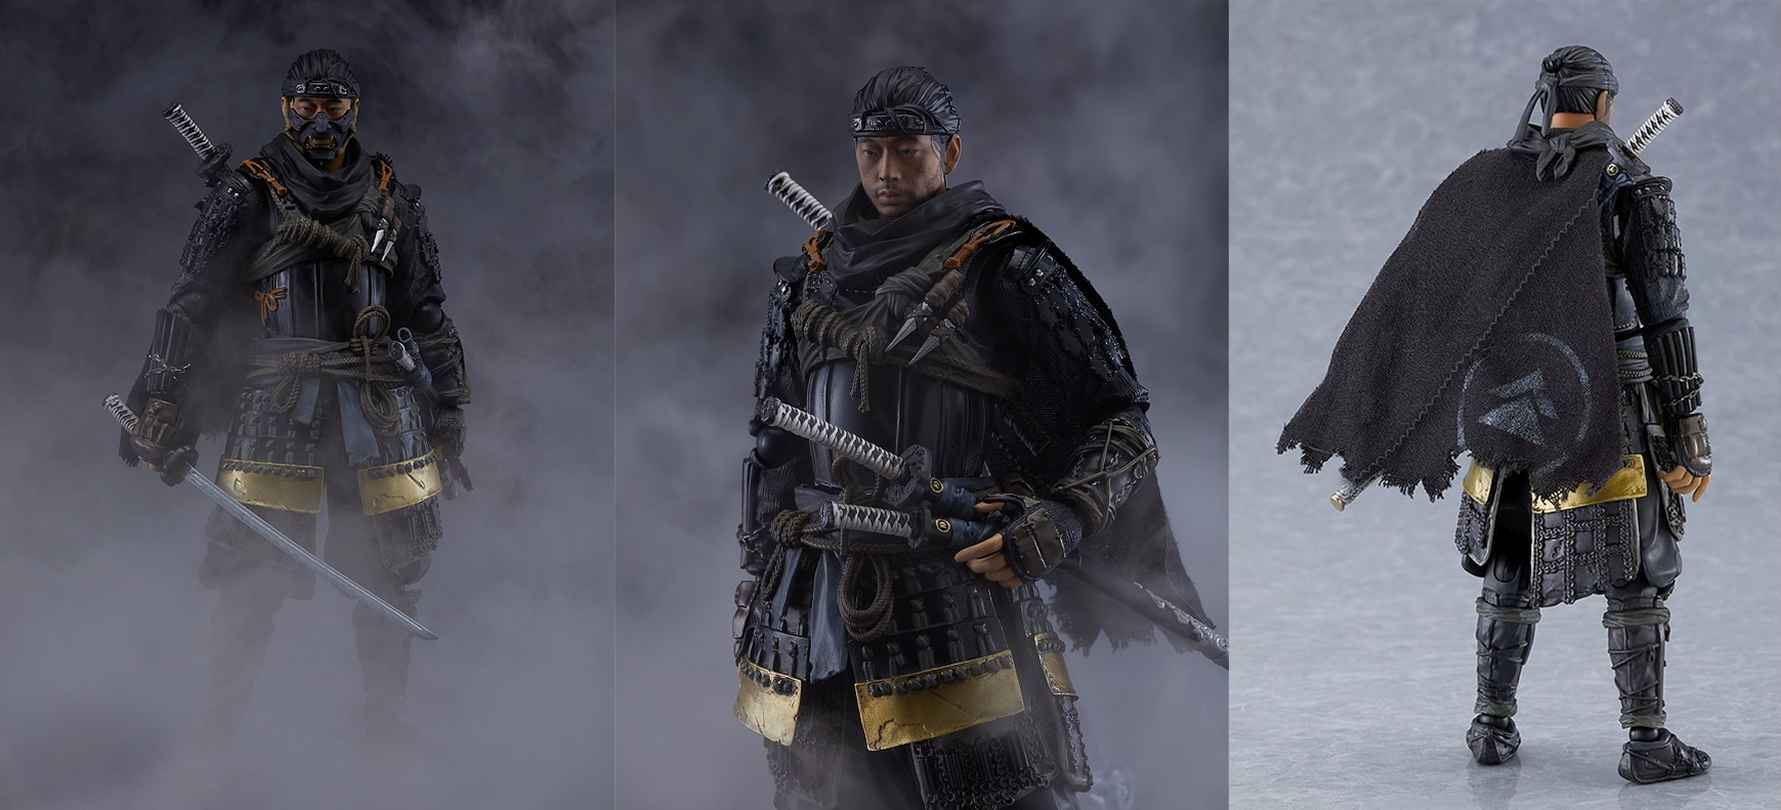 Ghost Of Tsushima's Jin Sakai Announced In Figma Figure Form